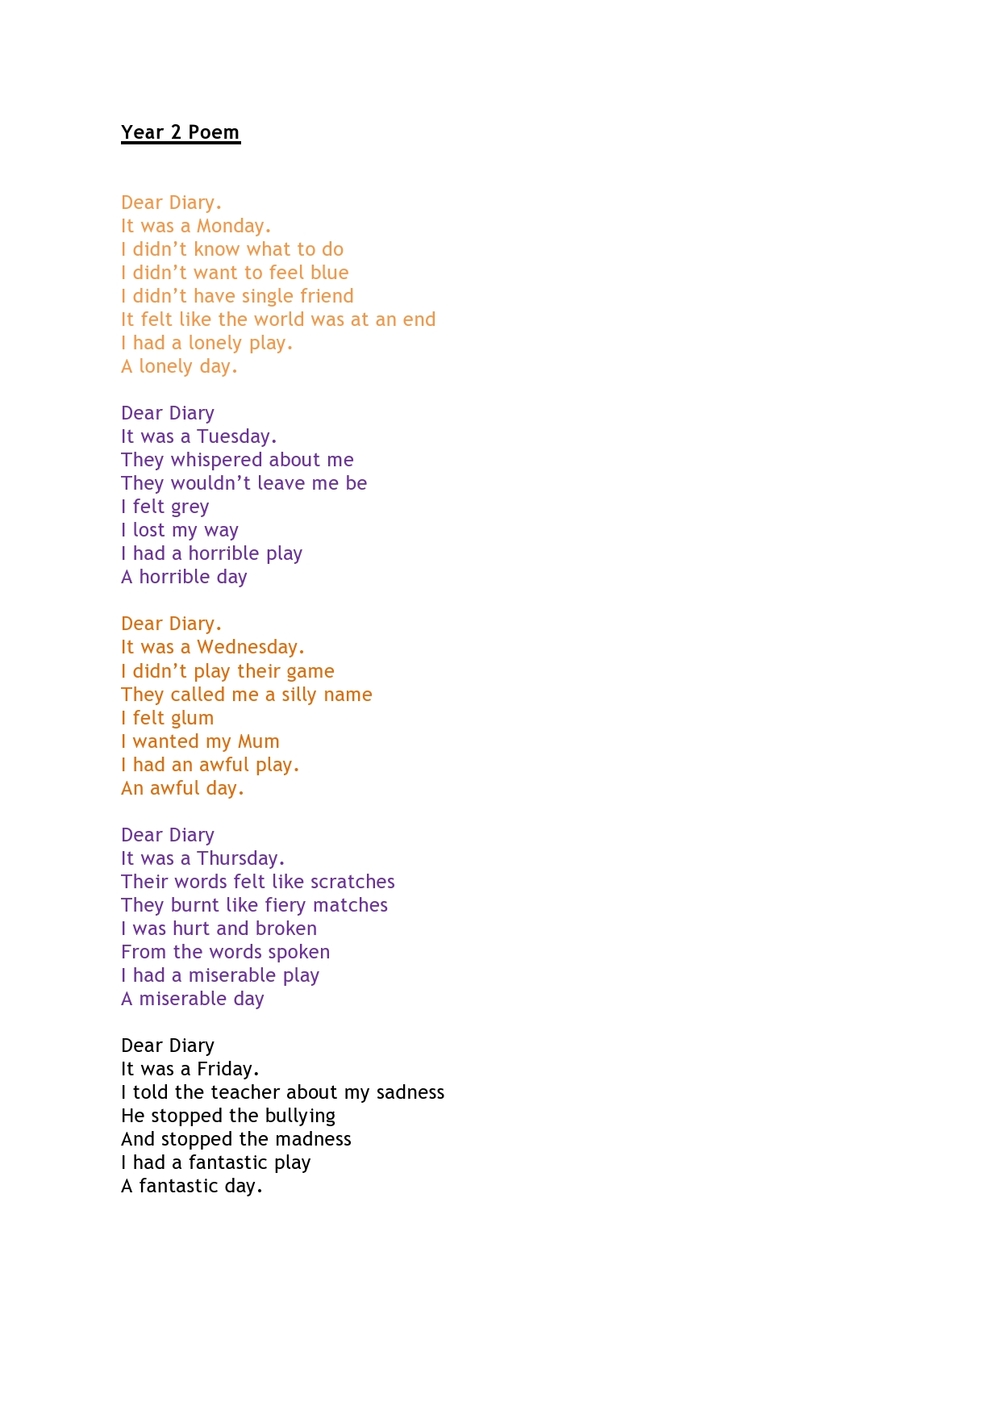 Year 2 Poem adapted-page0001.jpg